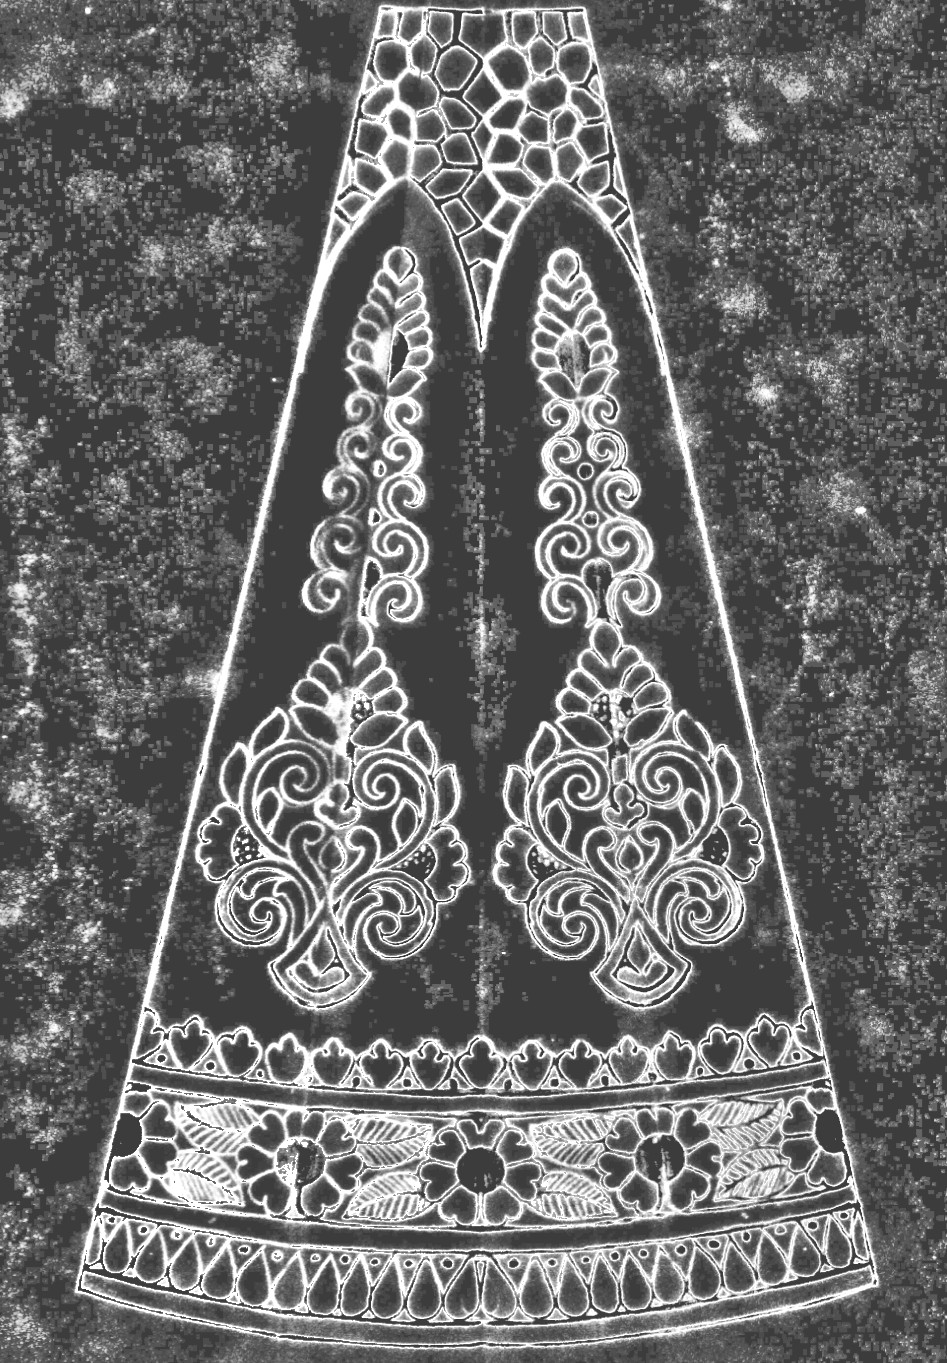 Pencil sketches traditional lehenga design patterns sketch of the year 2020 for embroidery and machine embroidery design.